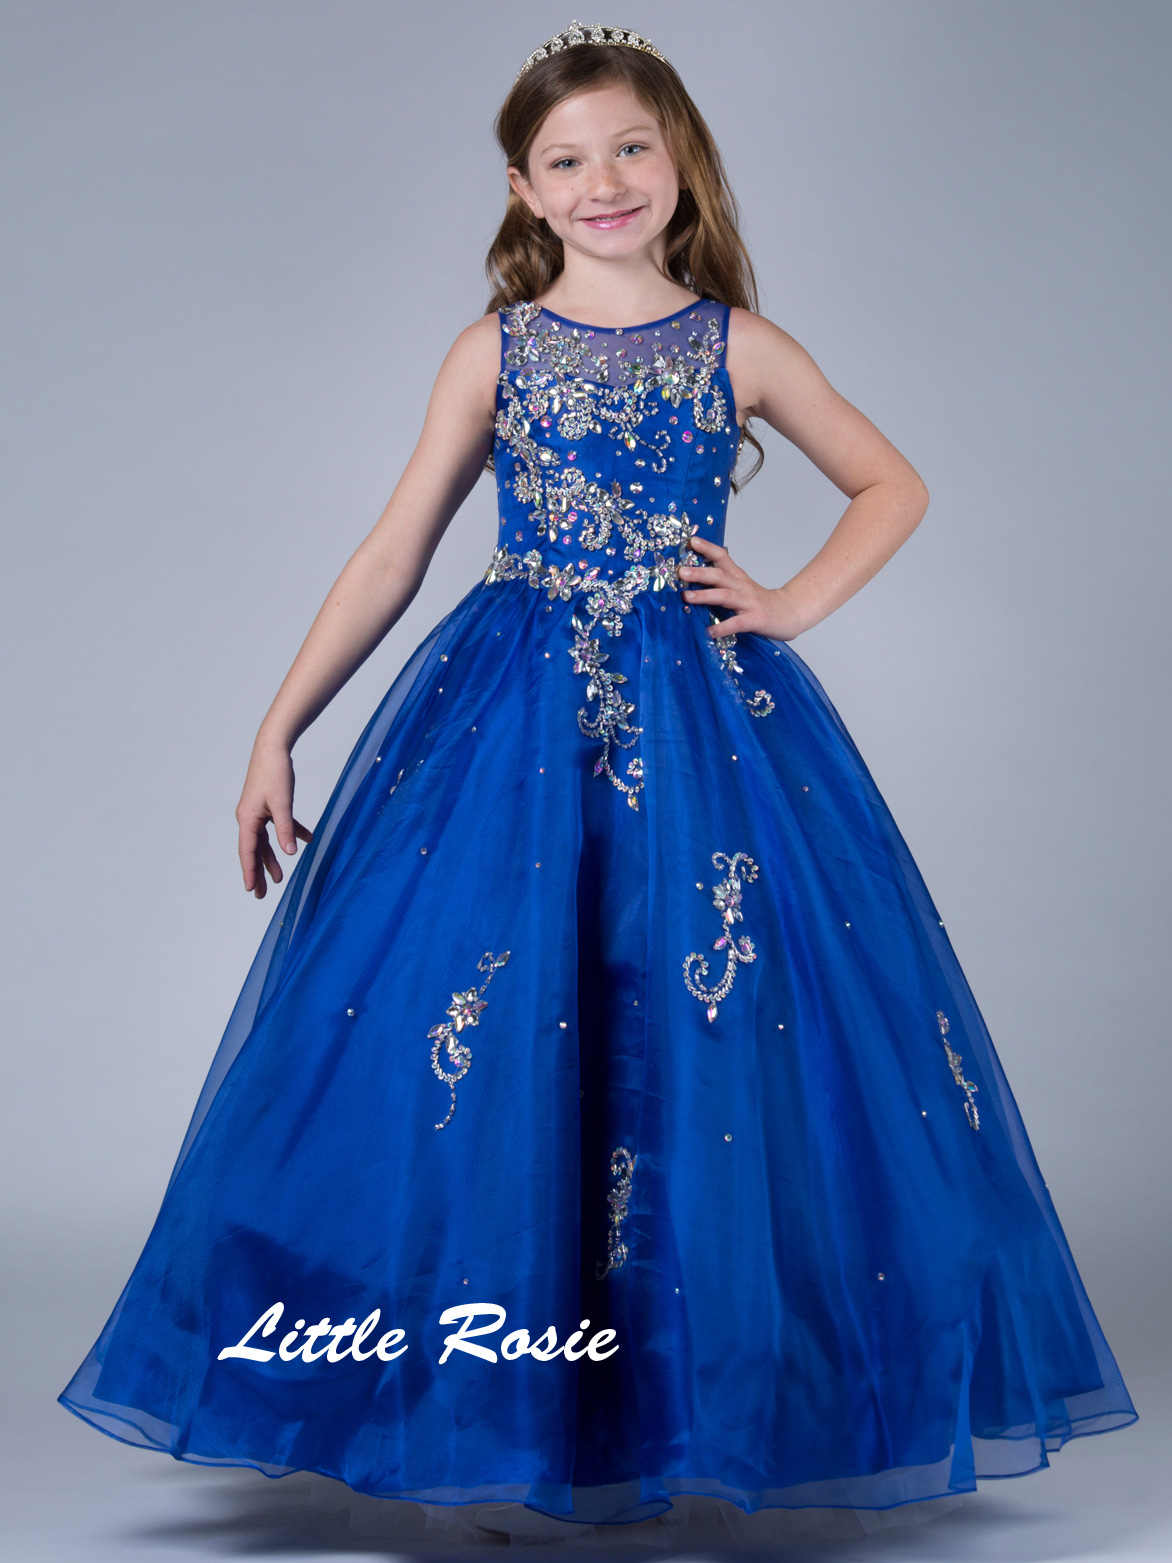 Little Rosie Long Pageant Dresses | PageantDesigns.com